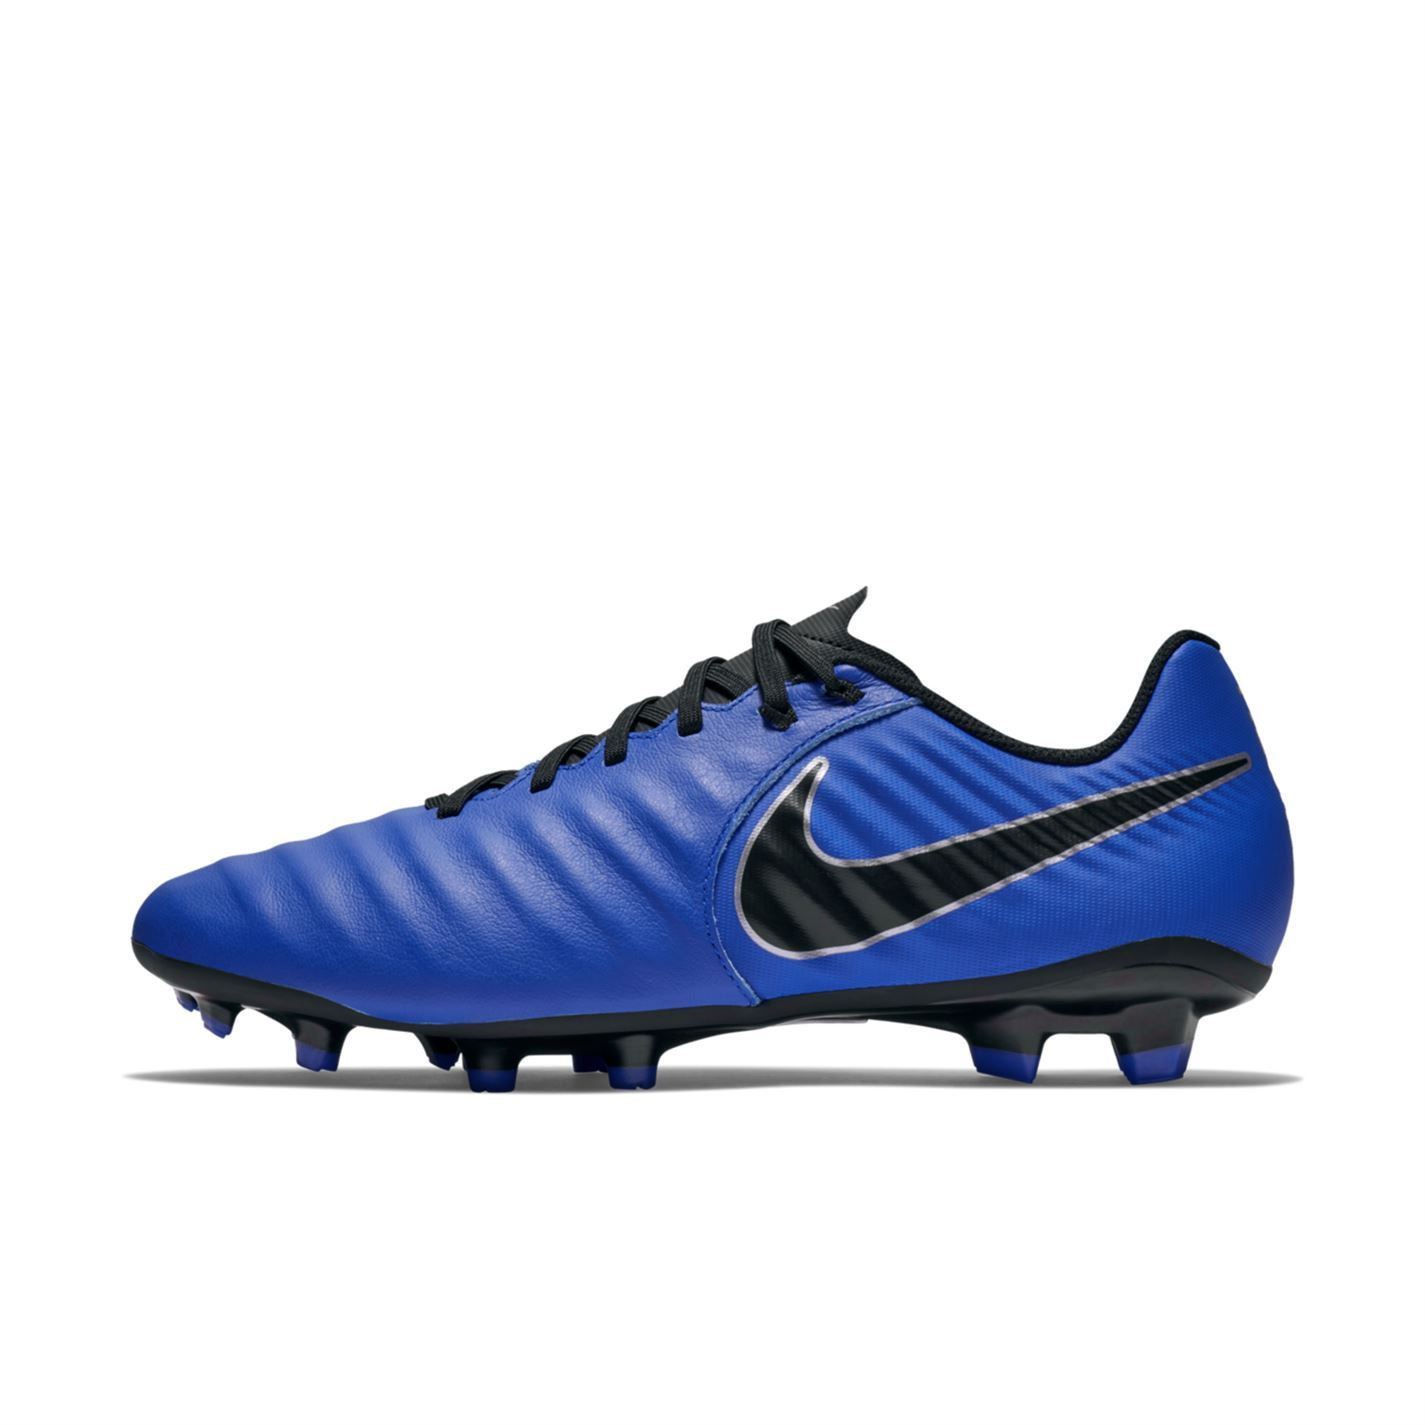 b857db8361 Nike Tiempo Legend Academy FG Firm Ground Football Boots Mens Soccer ...